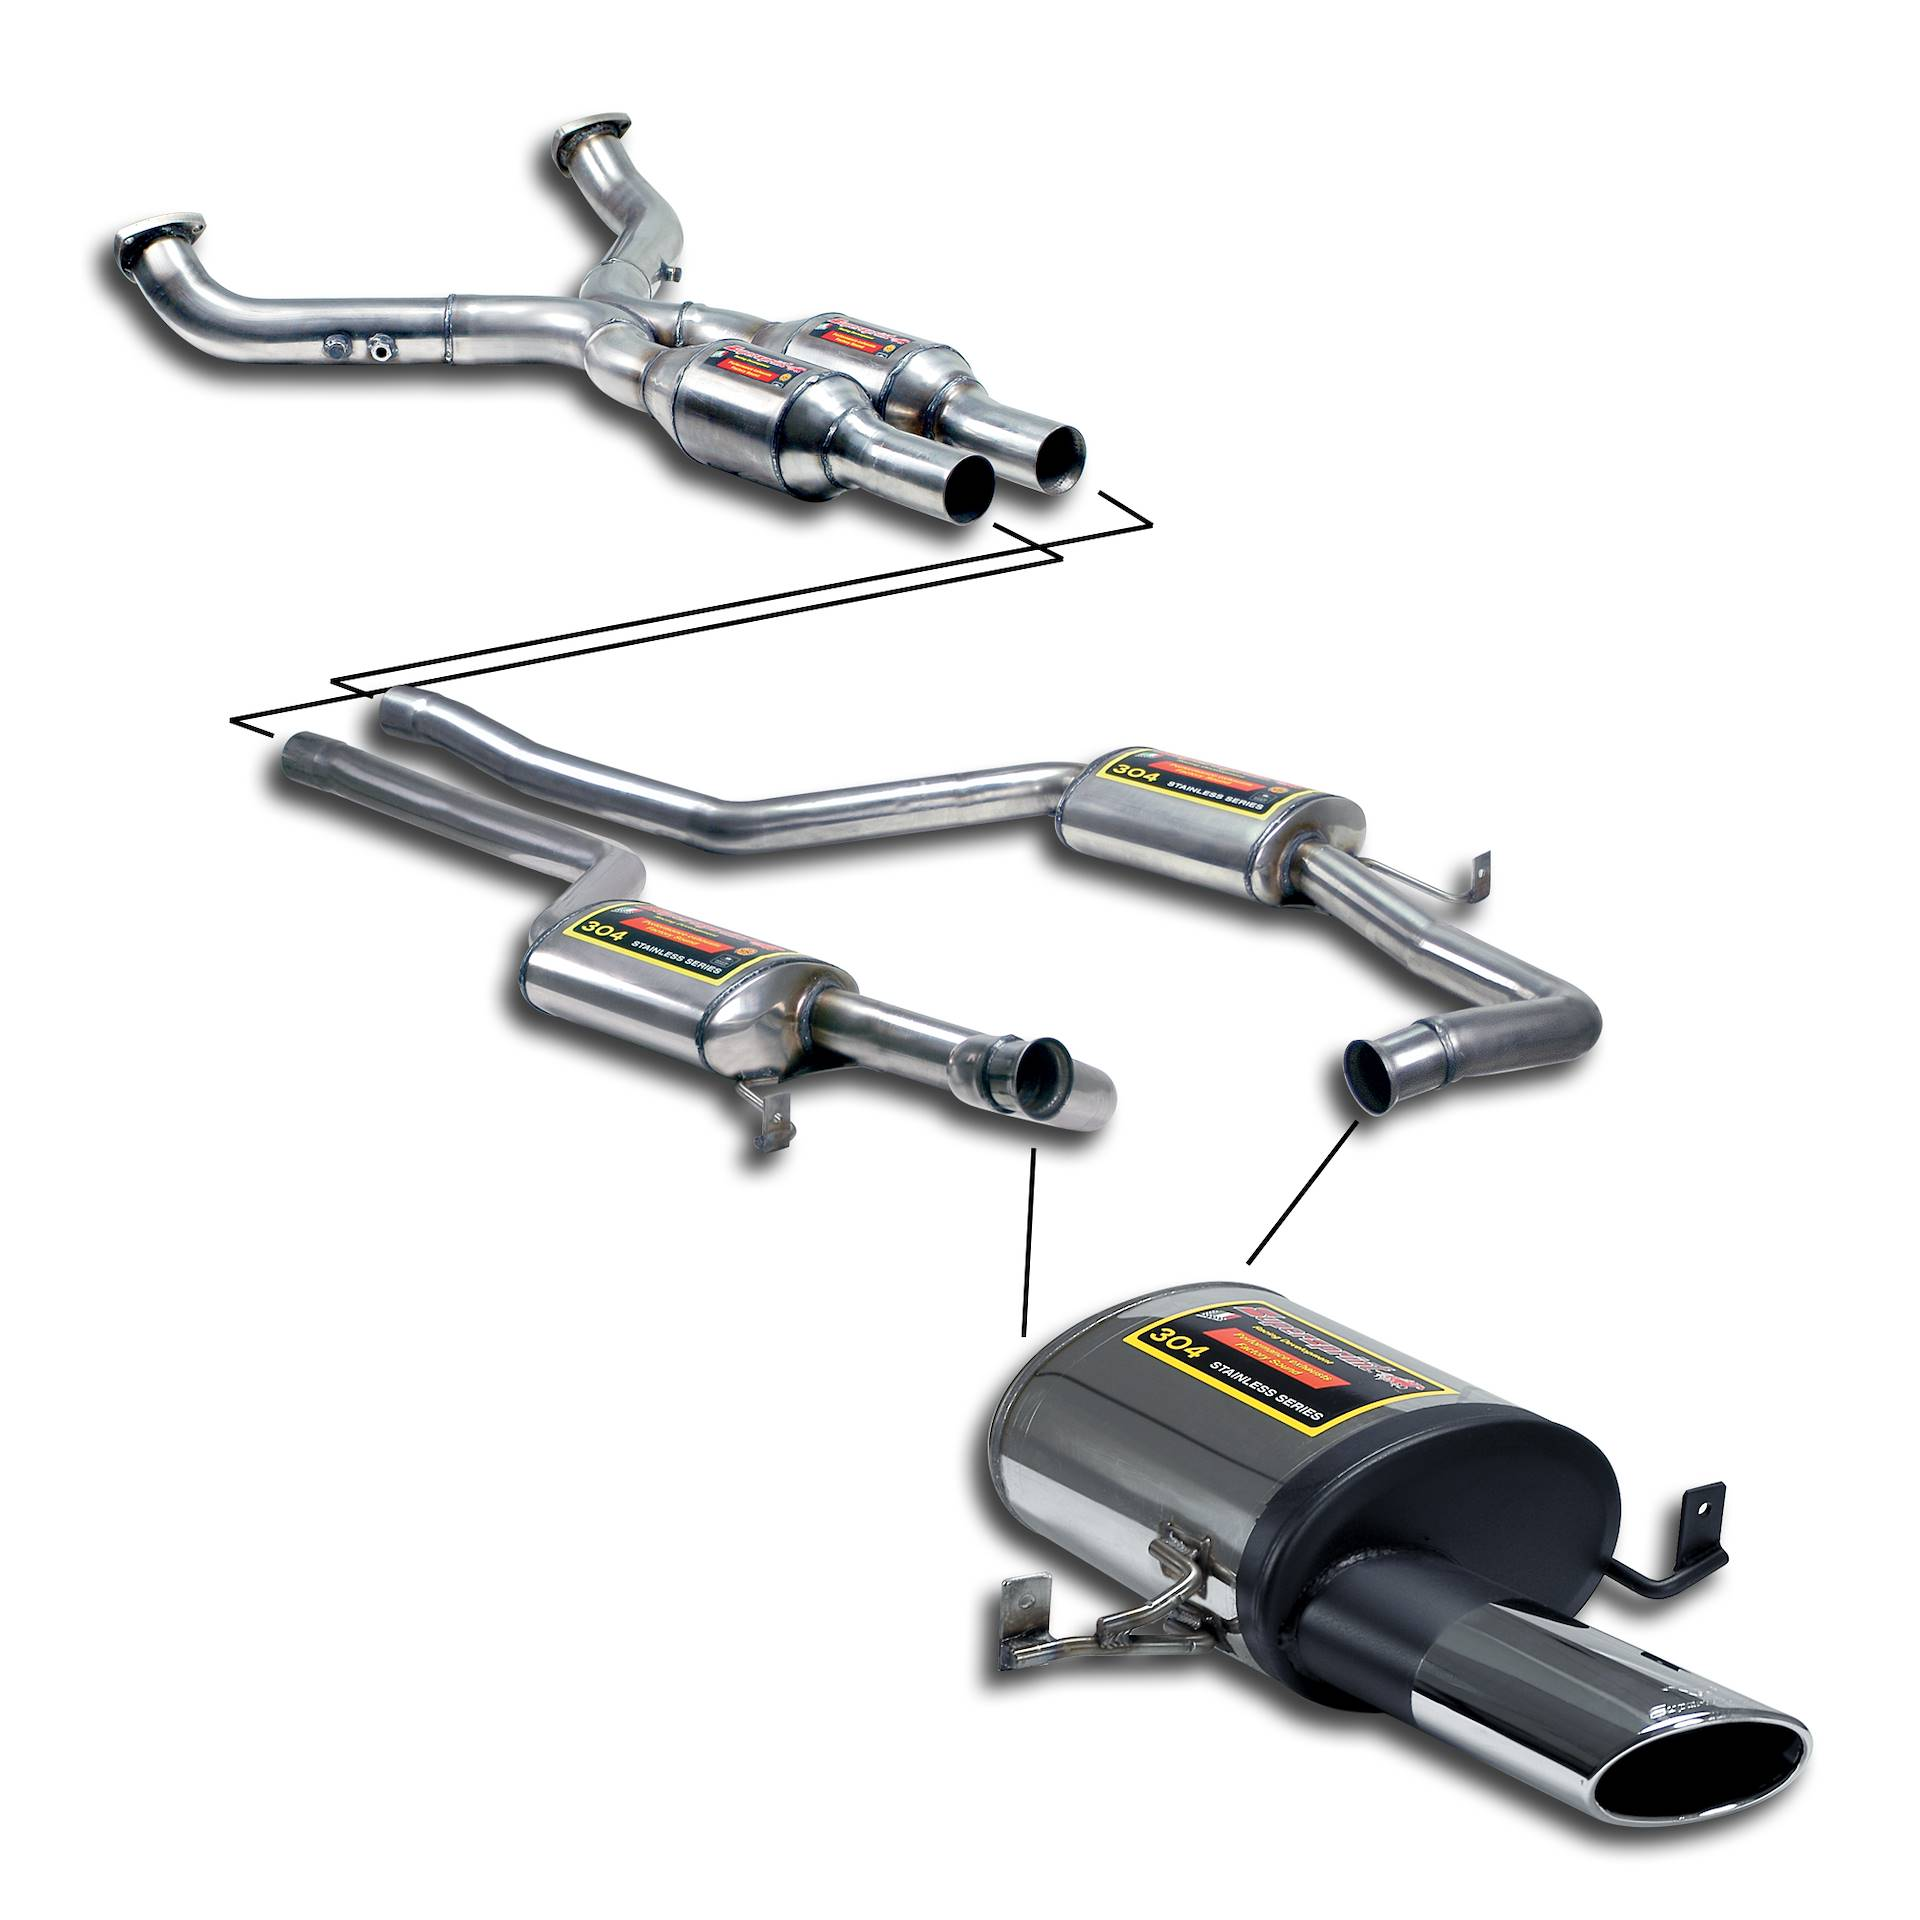 Porsche - PORSCHE 928 S4 Street performance pack , performance exhaust systems